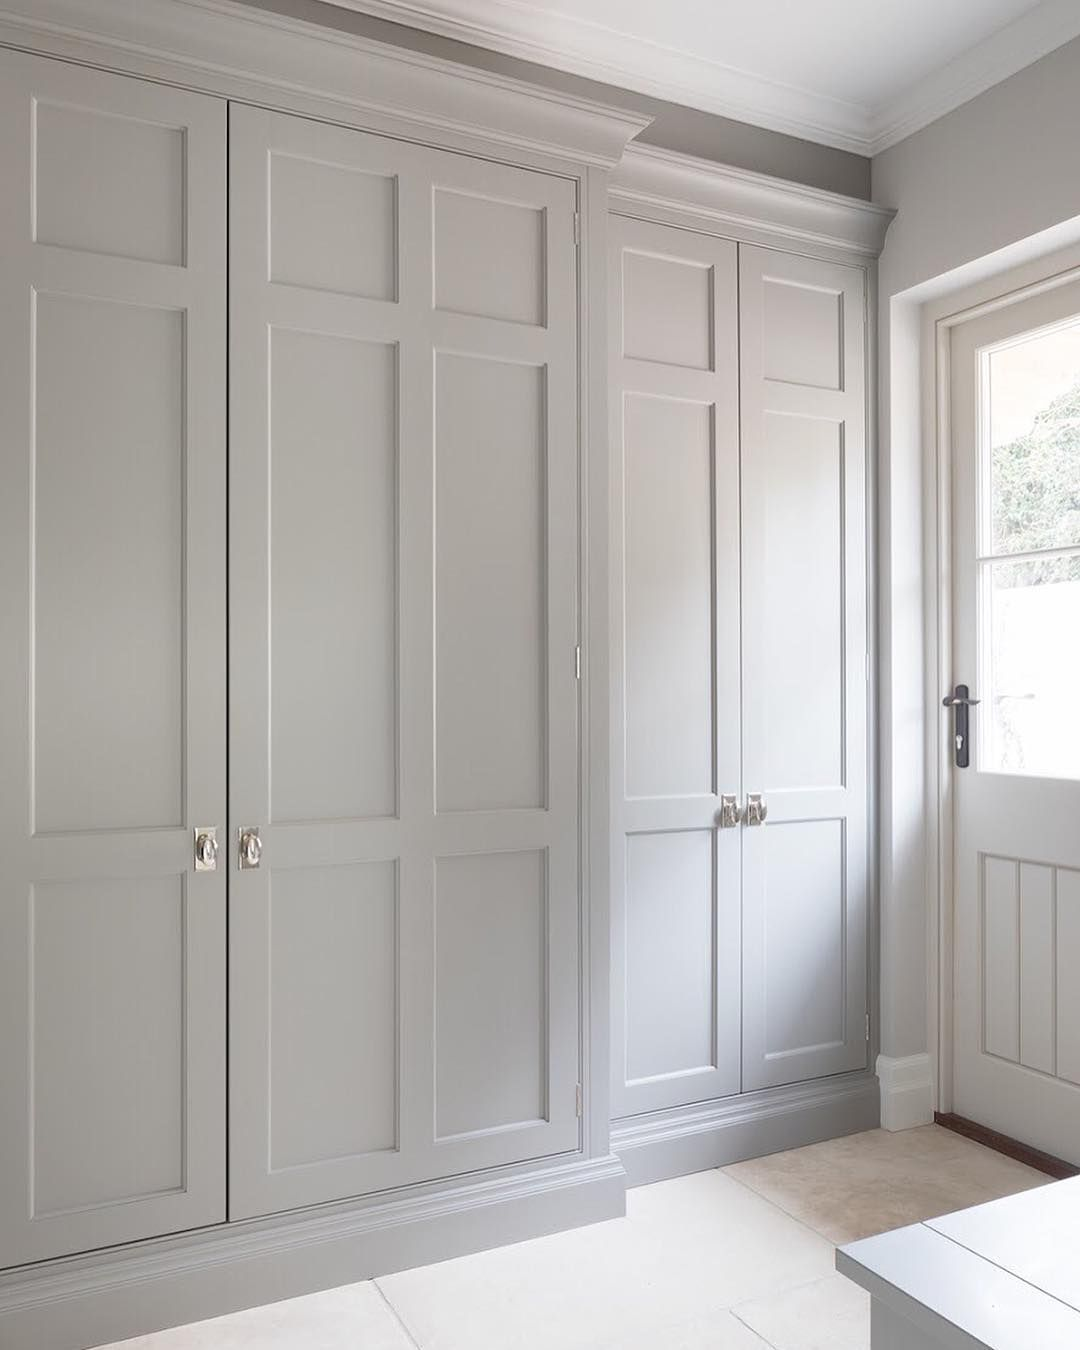 Behind These Doors In The Boot Room At The Park Lodge Project Is The Plant Room Who Would H Bedroom Built In Wardrobe Fitted Bedroom Furniture Fitted Bedrooms